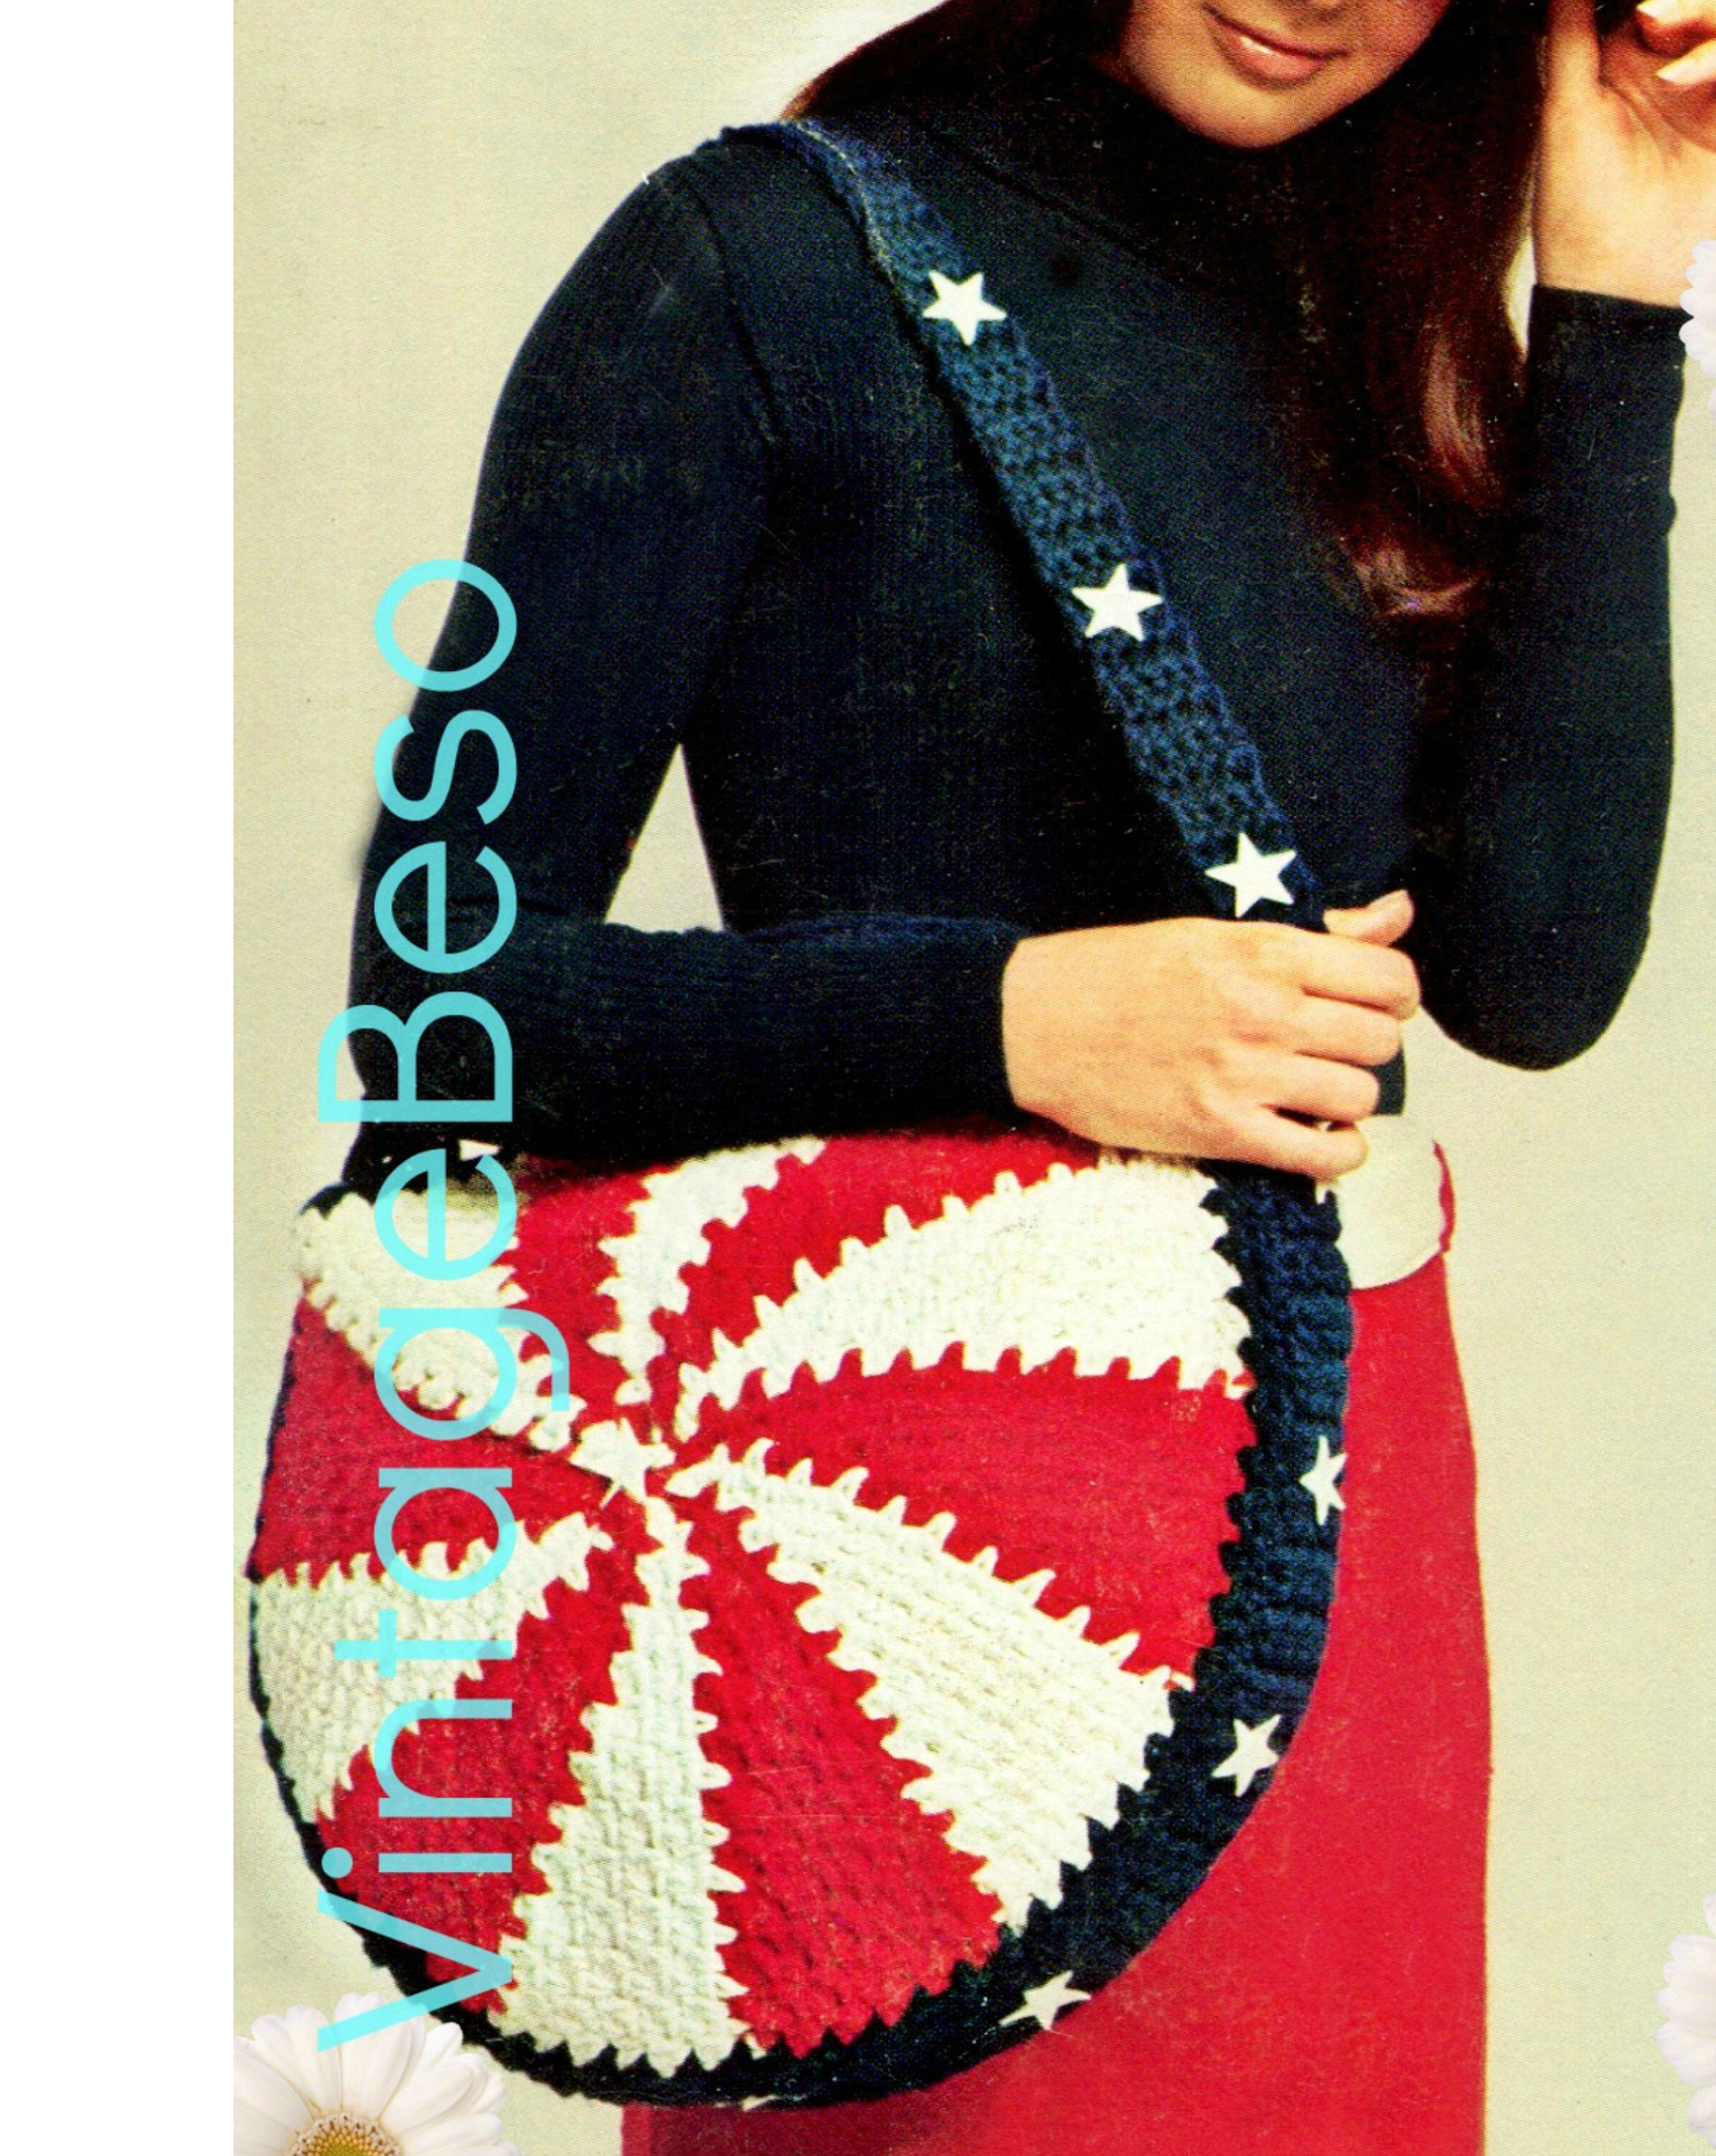 3 Patterns 1970s Vintage Crochet Pattern * Hat Cap Bag Purse Tote Briefcase * Patriotic Crochet * Great for Beginners * Watermarked PDF Only